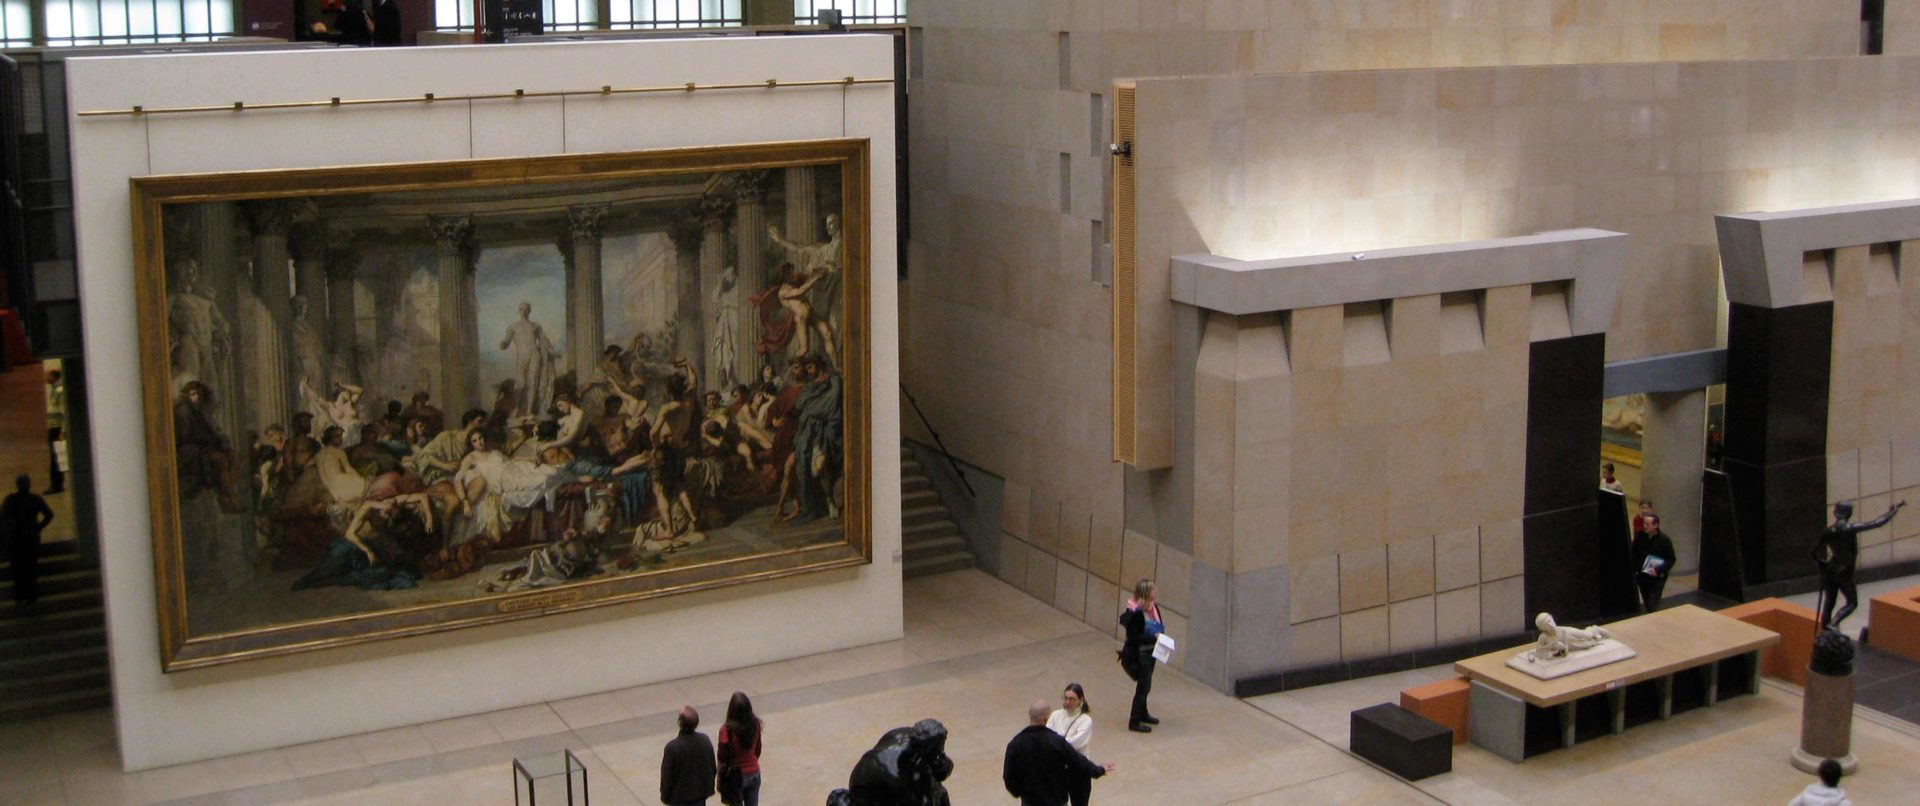 impressionism-guided-family-experience-orsay